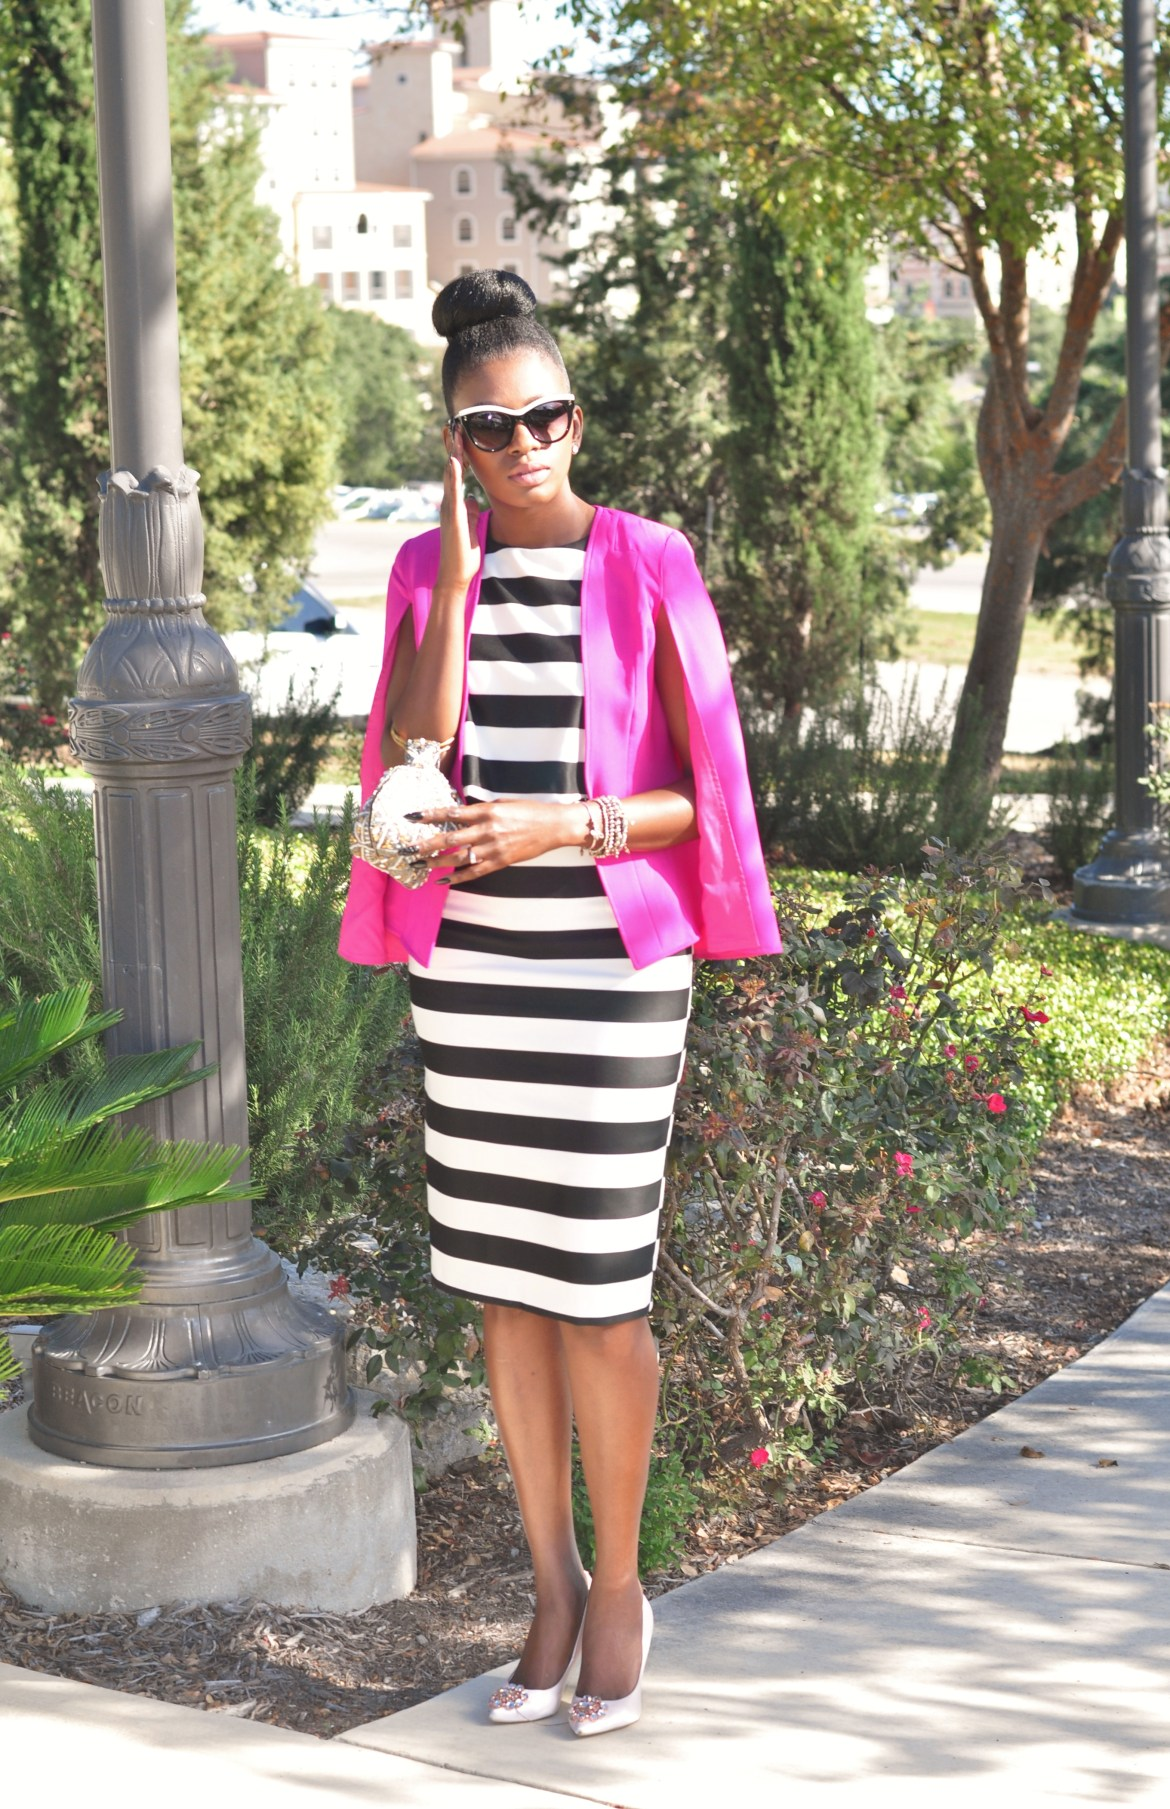 This is one chic look. Very elegant in the b/w stripes with a pink blazer. This zone is where I need to be in my style